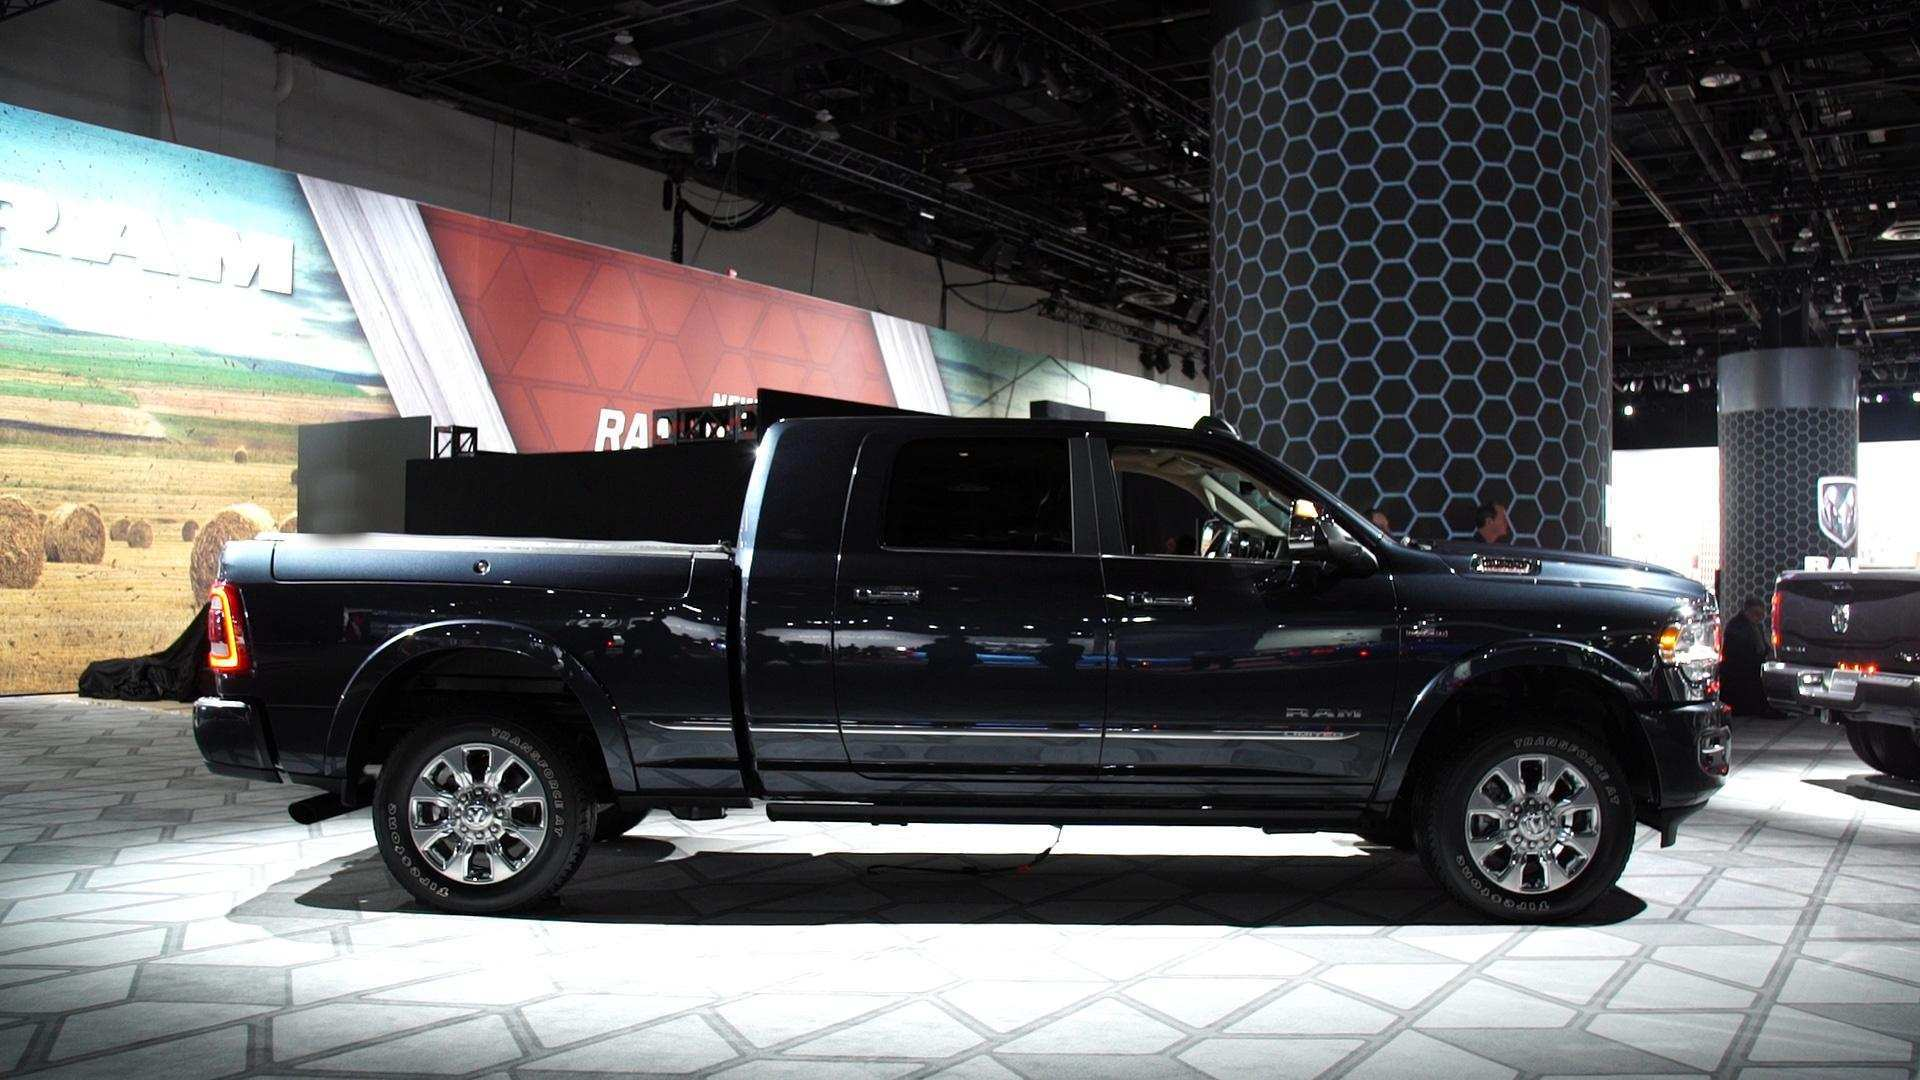 16 The Best 2019 Dodge Ram 2500 Cummins Release Date